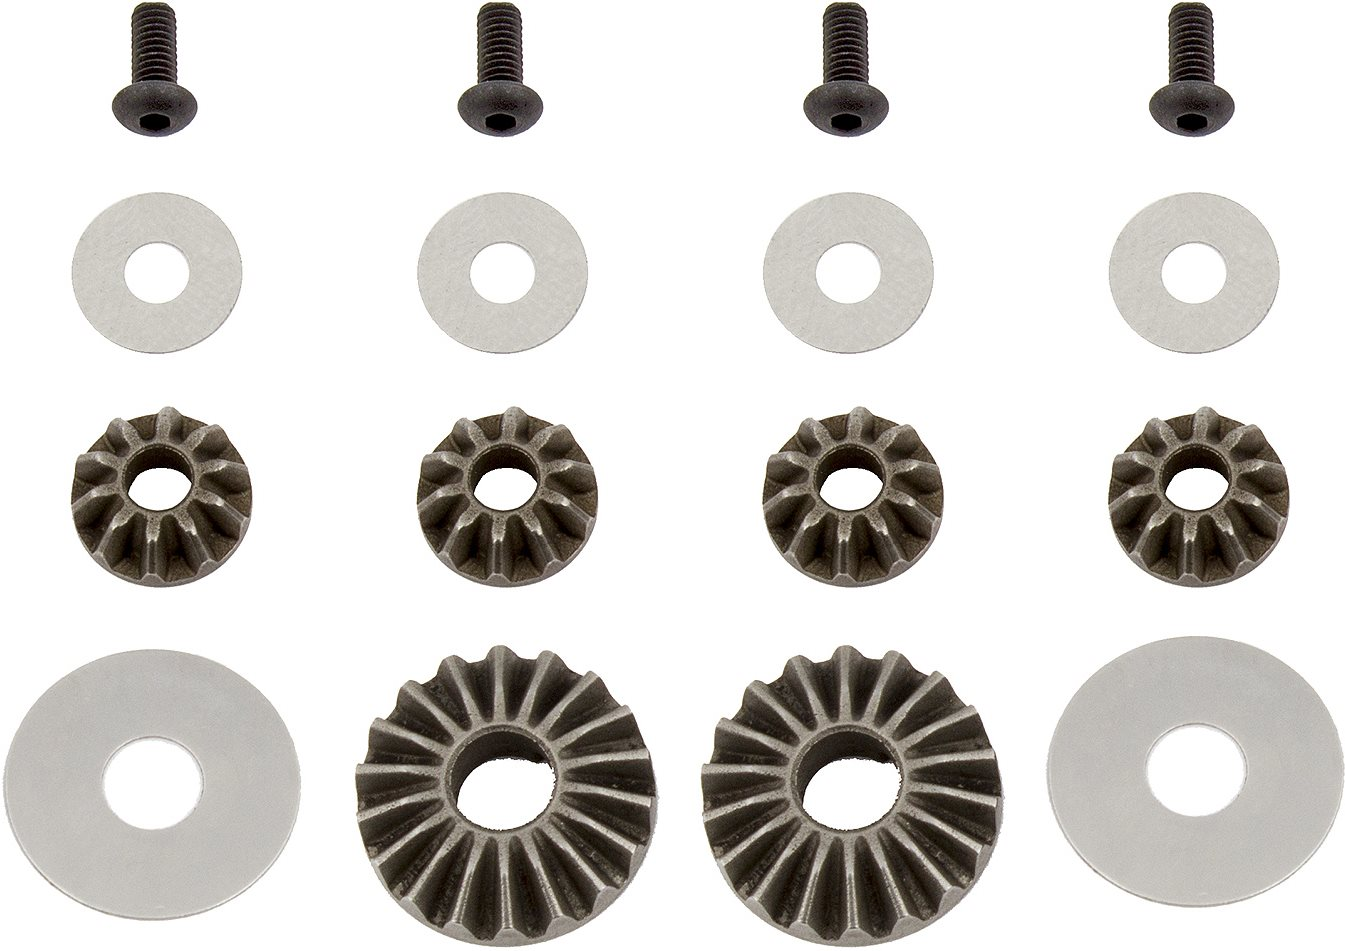 Associated Gear Differential Rebuild Kit, For B6.1